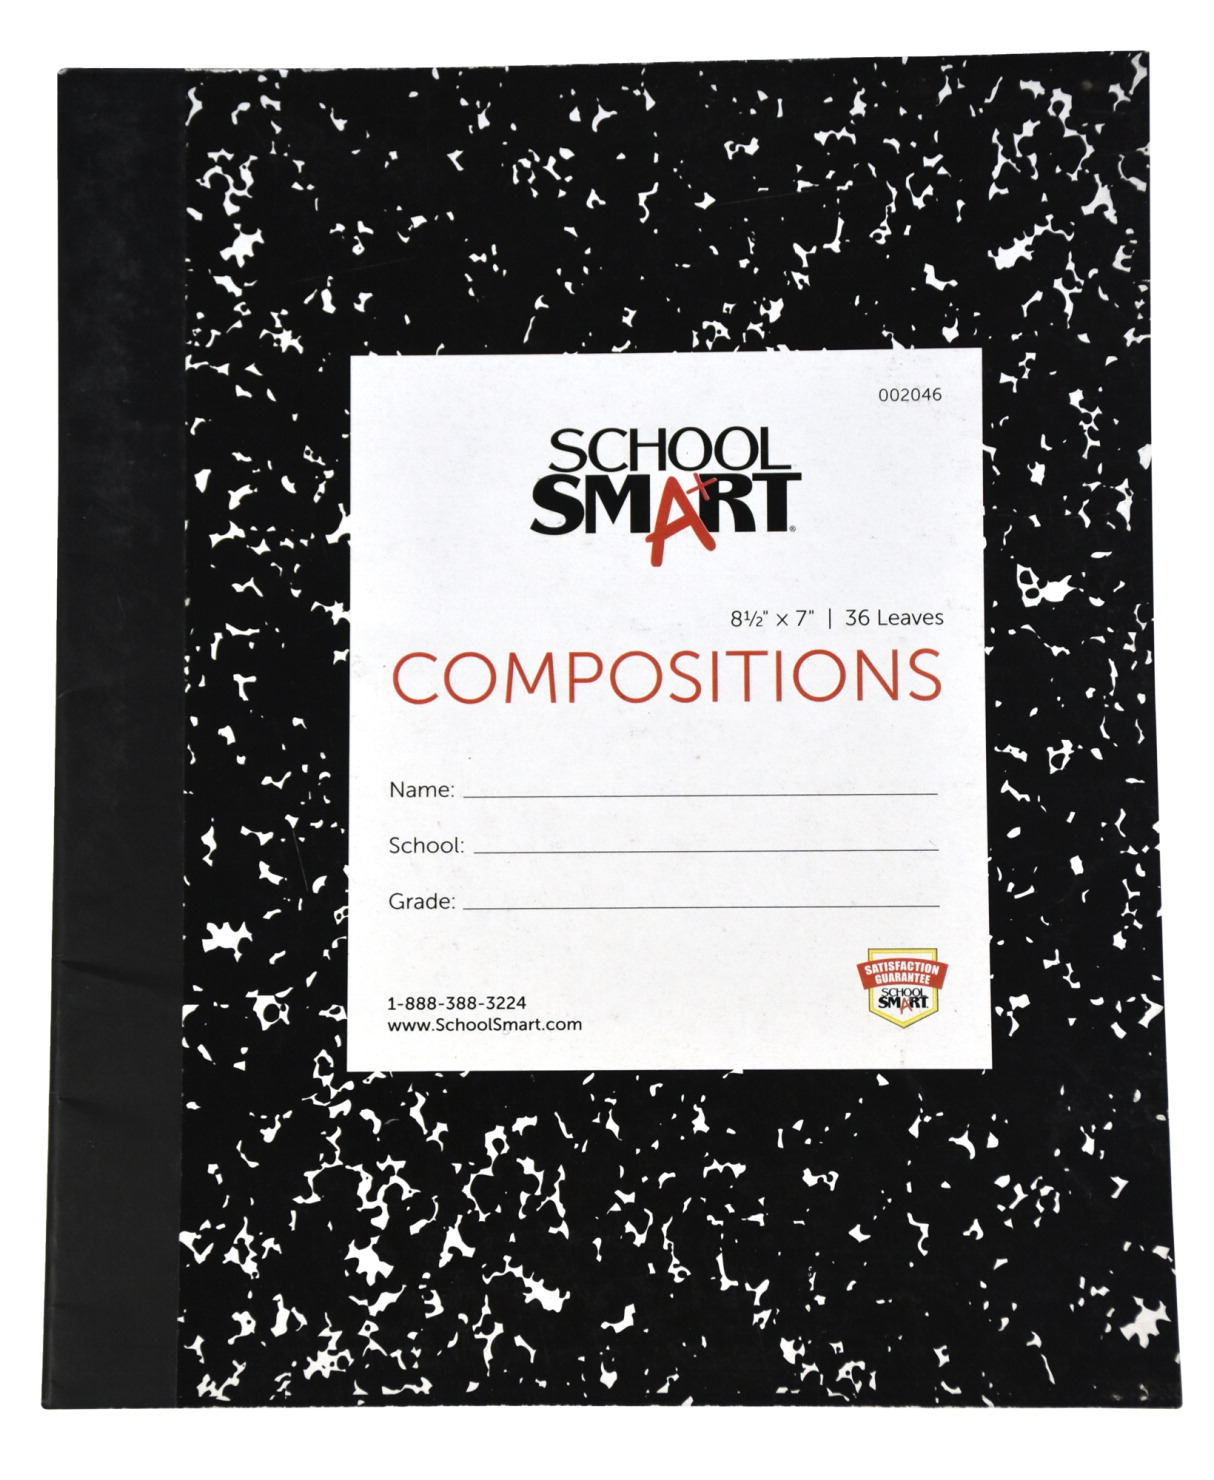 School Smart Flexible Cover Composition Book, 8-1/2 x 7 Inches, 36 Sheets